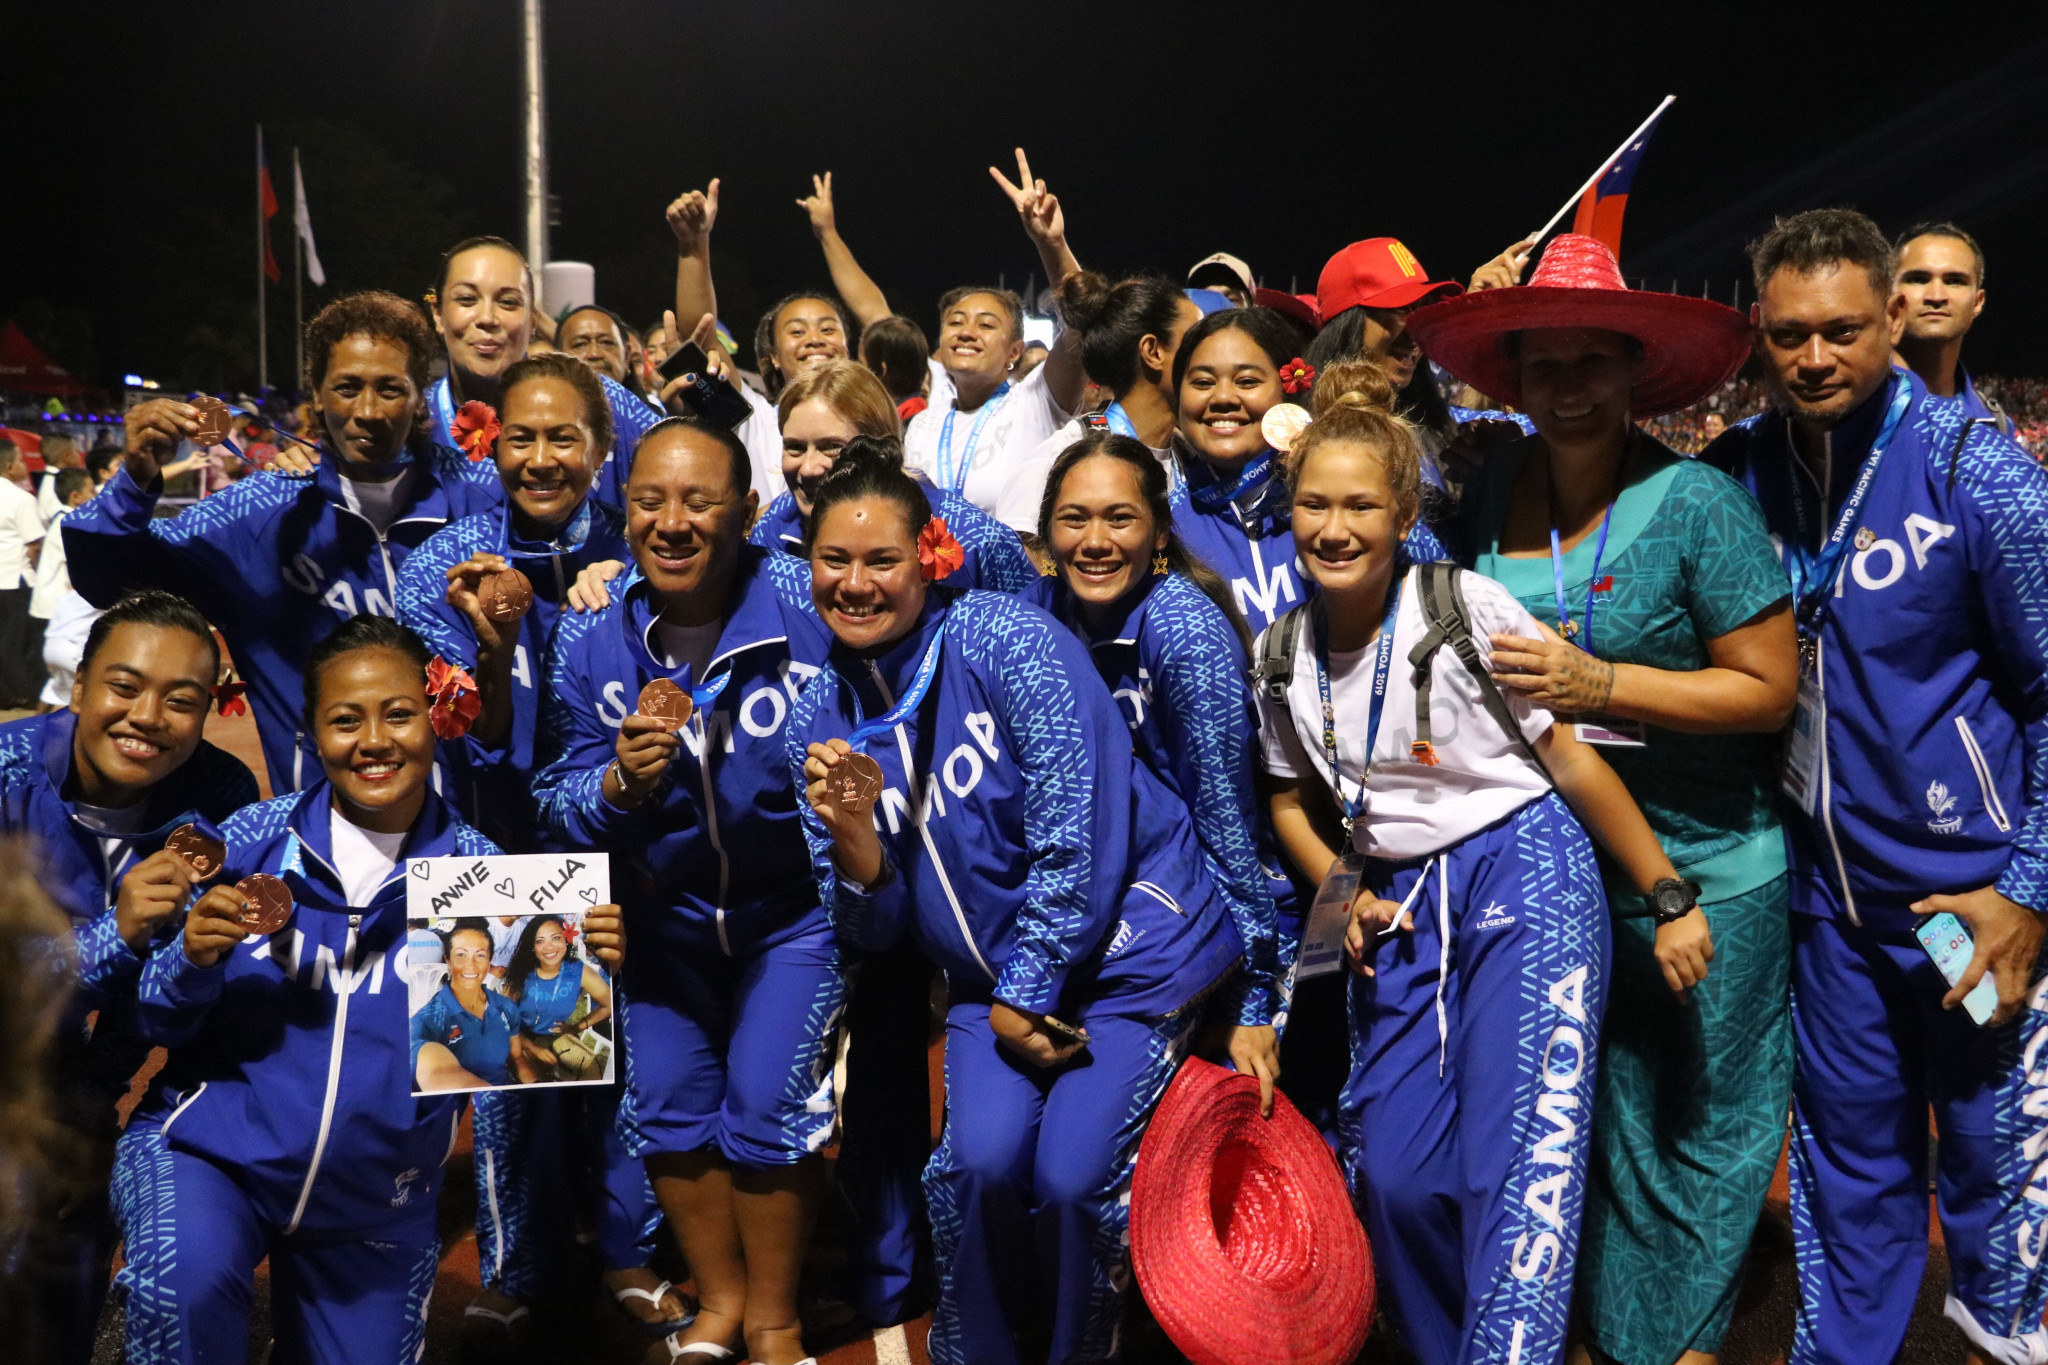 """Pacific Games come to a close as Samoa Prime Minister calls for """"consultations"""" on transgender athletes in speech"""